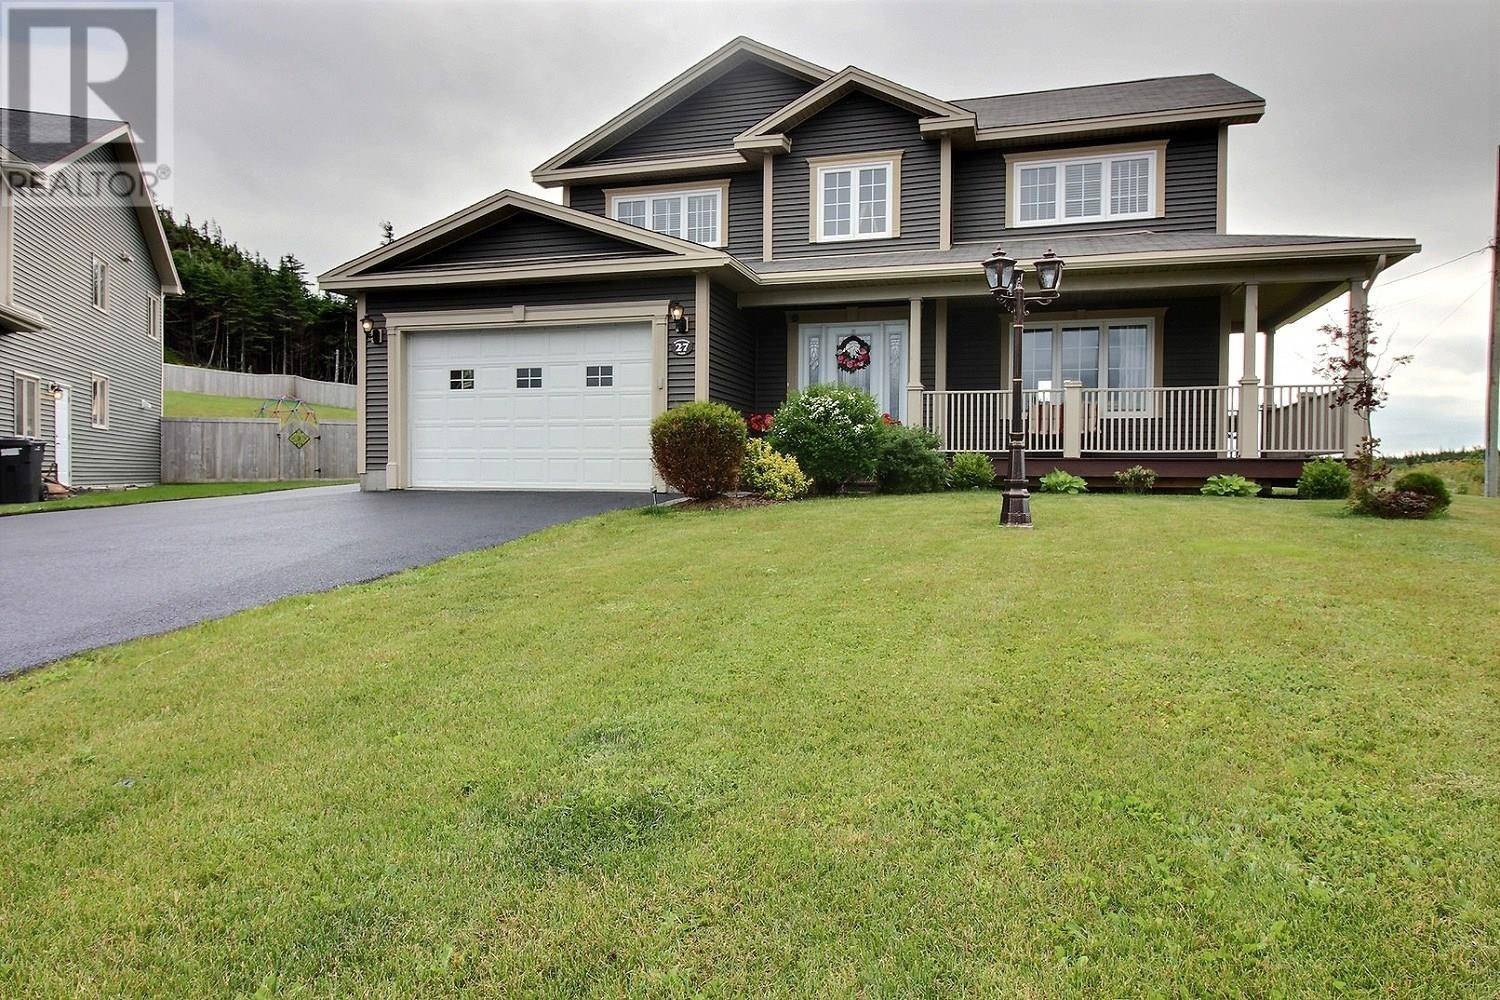 House for sale at 27 Summerwood Pl Portugal Cove Newfoundland - MLS: 1199907